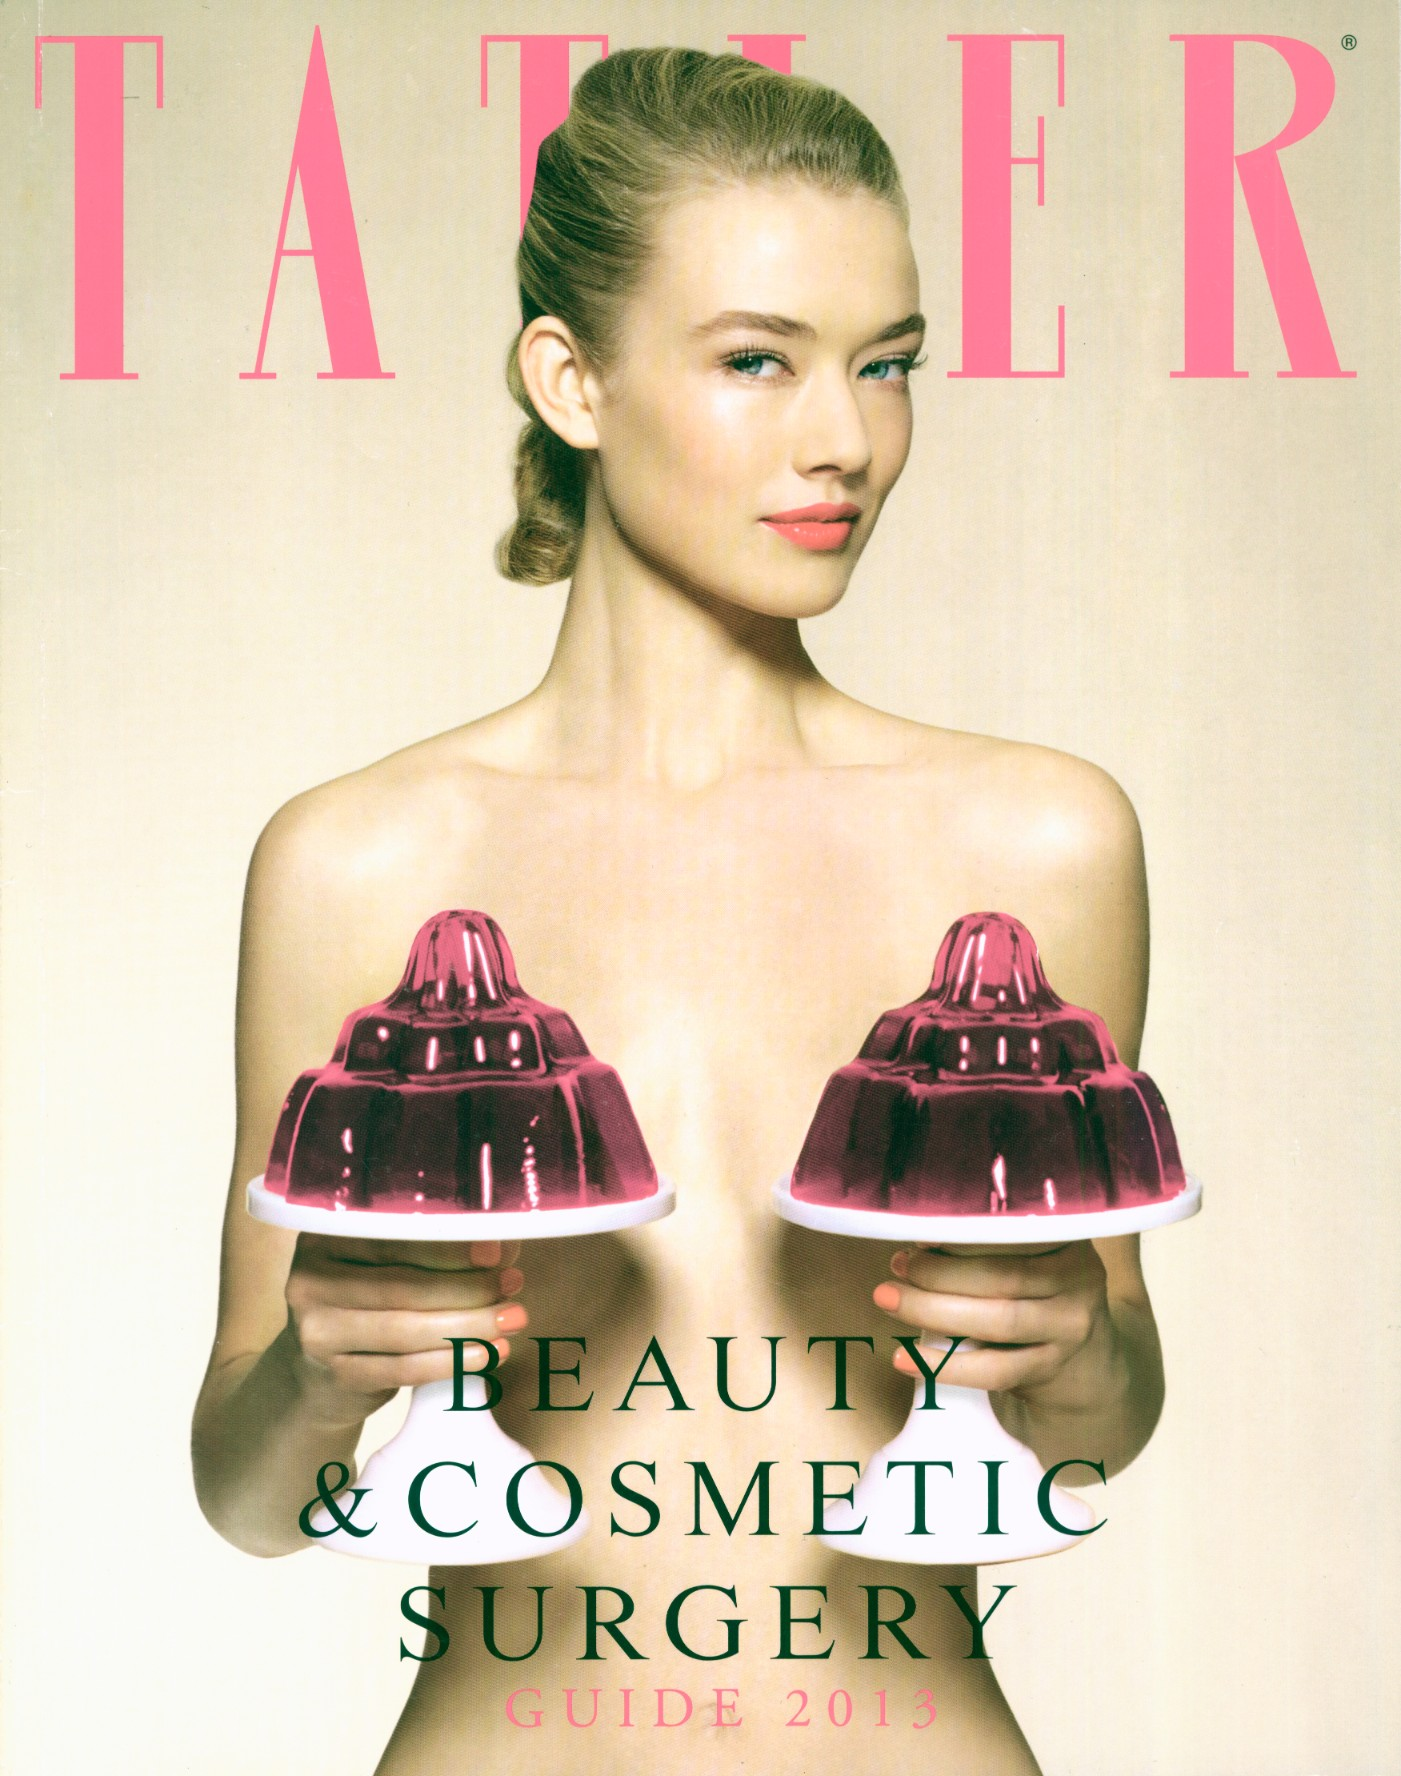 tatler-beauty & cosmetic surgery guide 2013